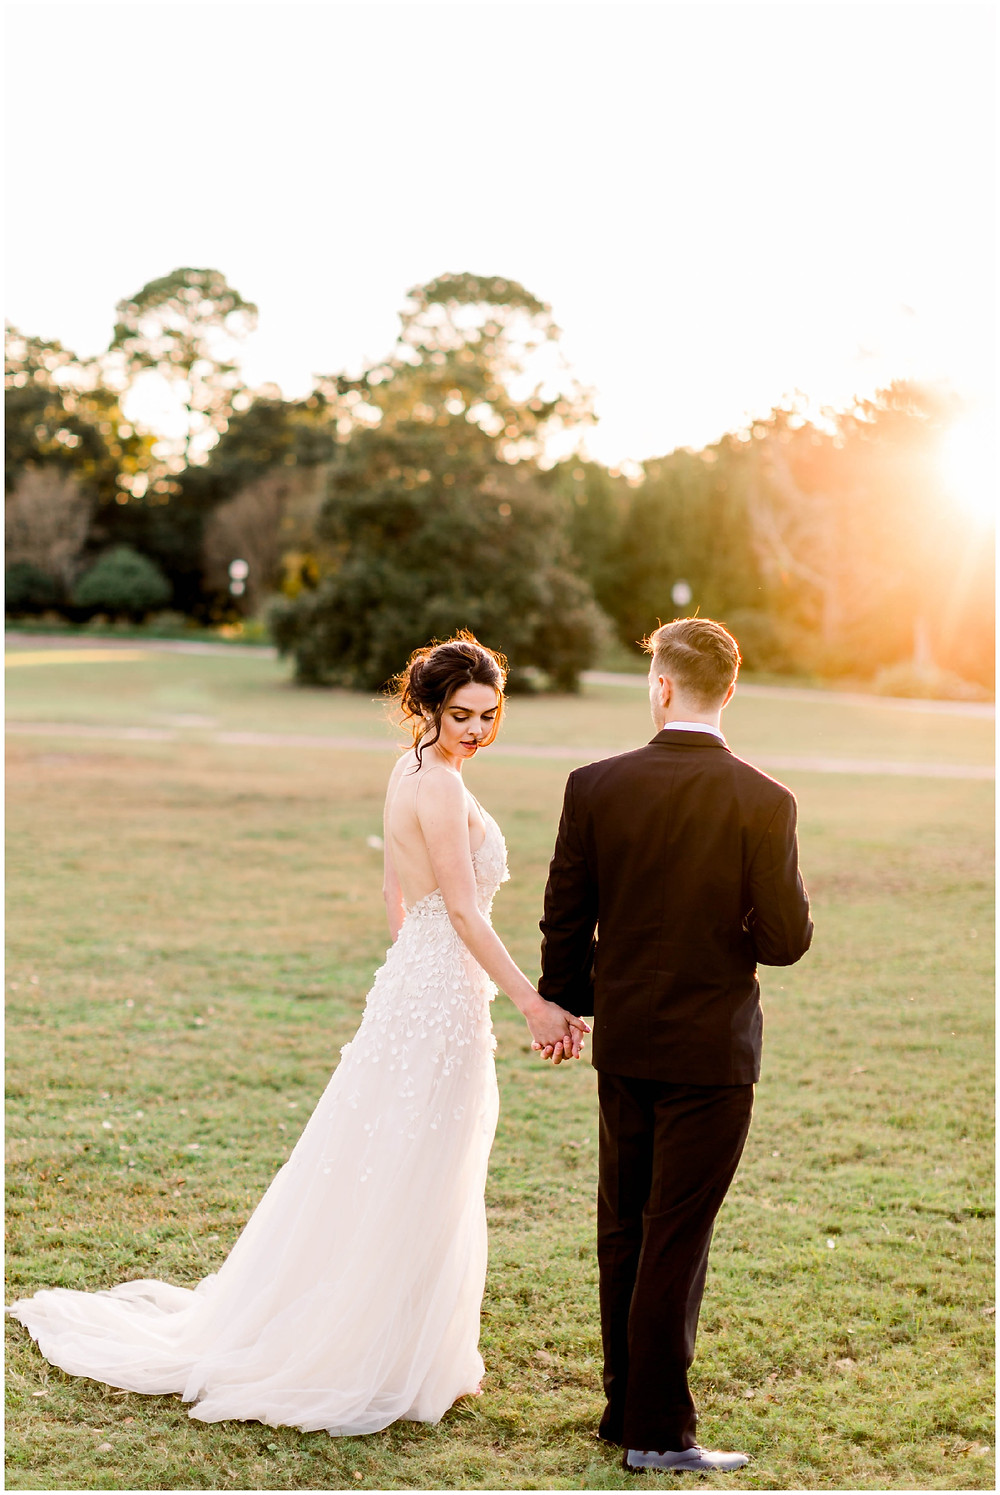 Wedding-Day-sunset-photos